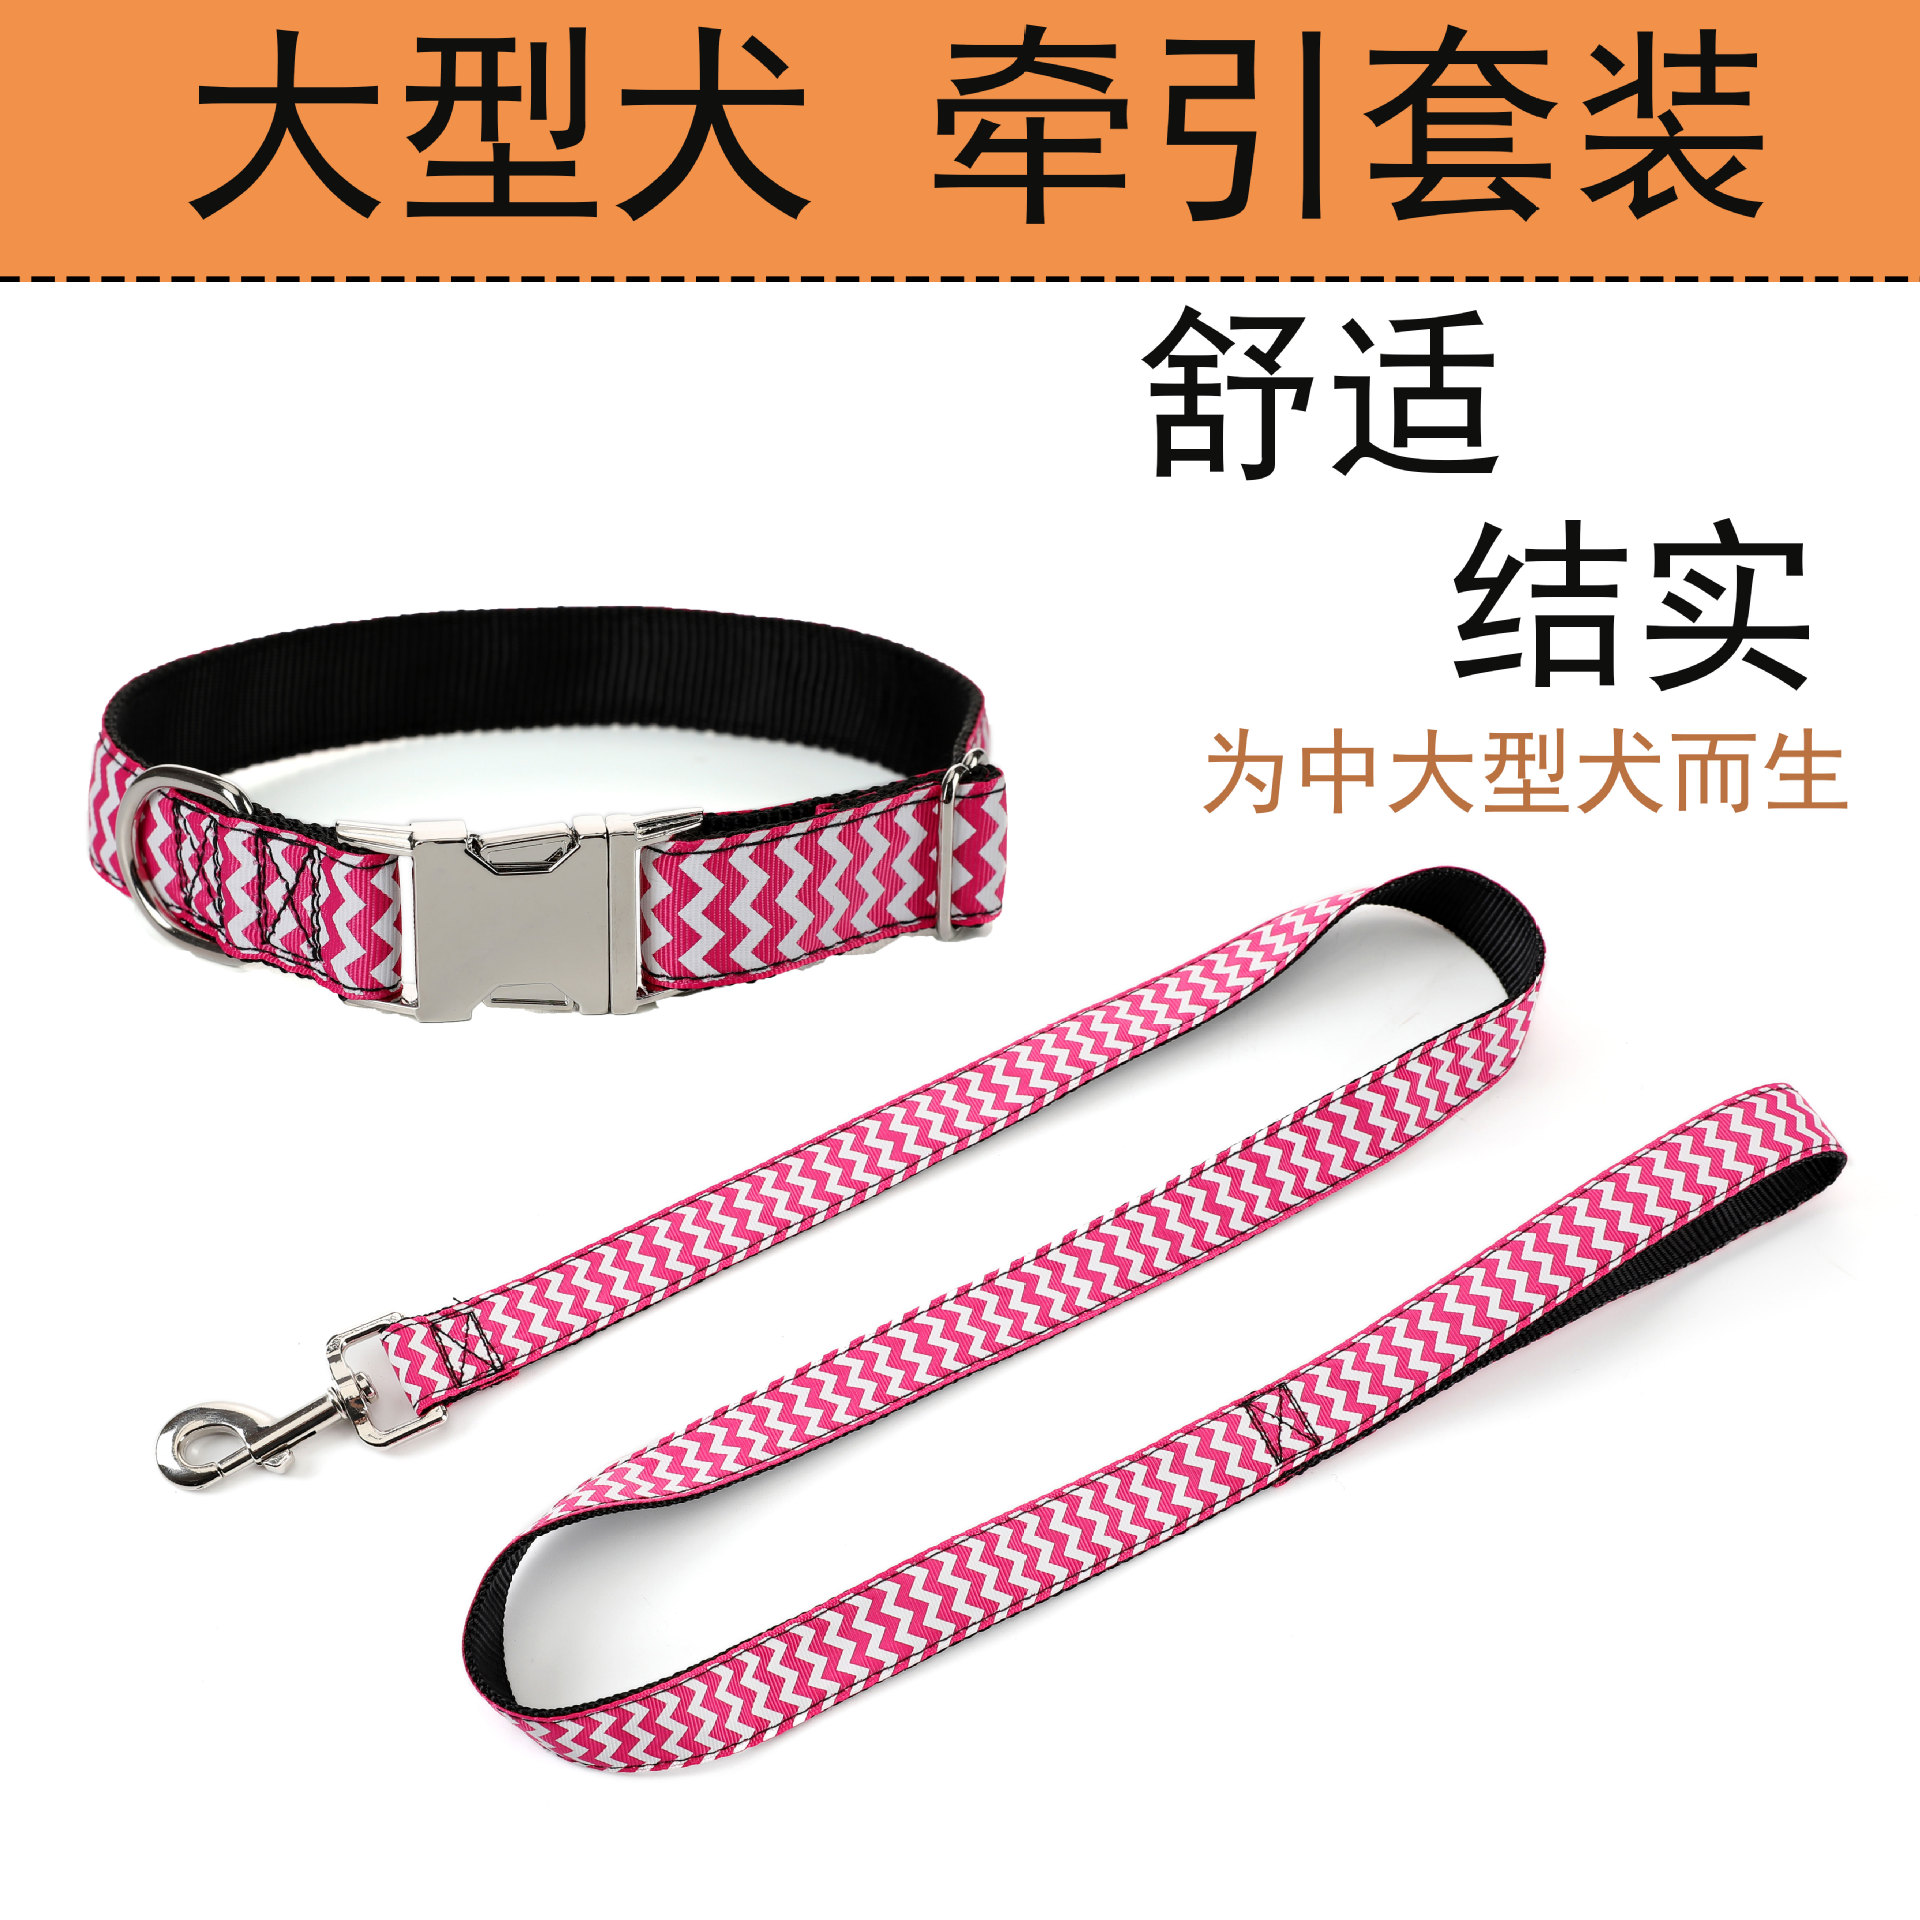 Pet Dog Collar Wave Pattern Haulage Rope Package Innovation Pet Supplies New Style